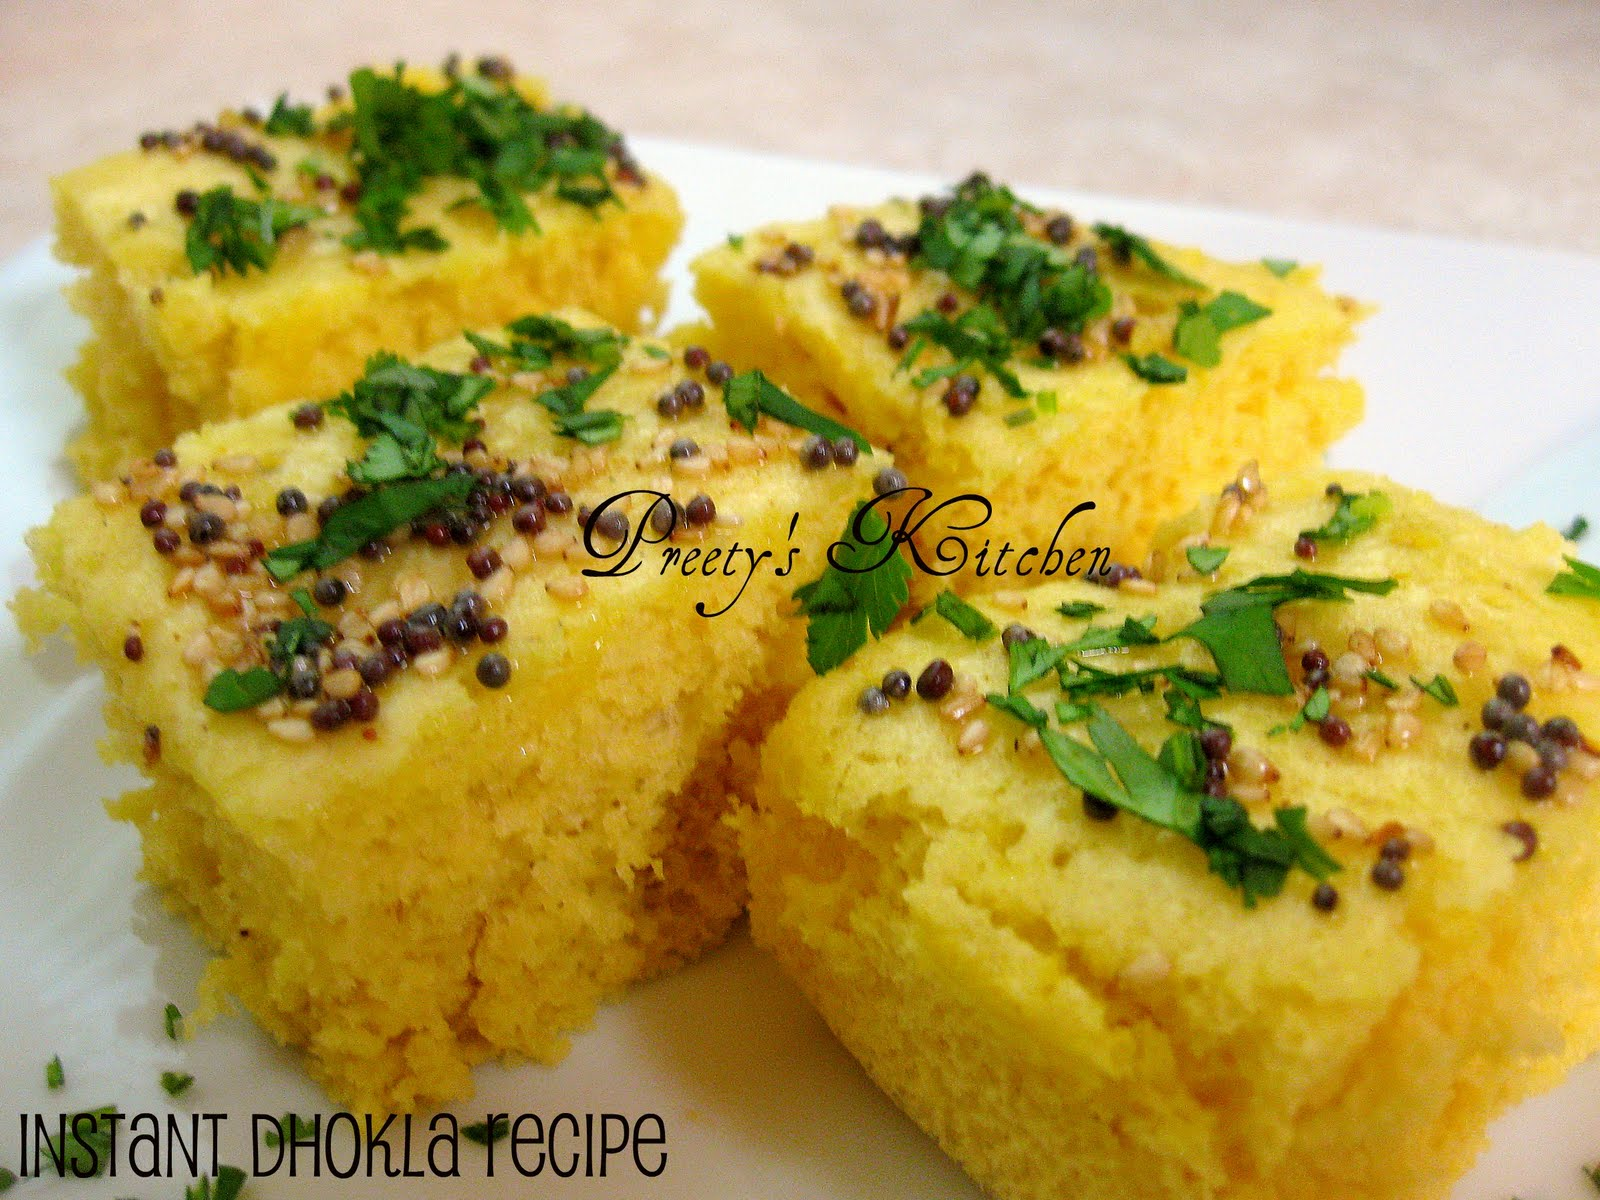 Preetys kitchen instant dhokla recipe steamed gram flour cakes instant dhokla recipe steamed gram flour cakes forumfinder Gallery